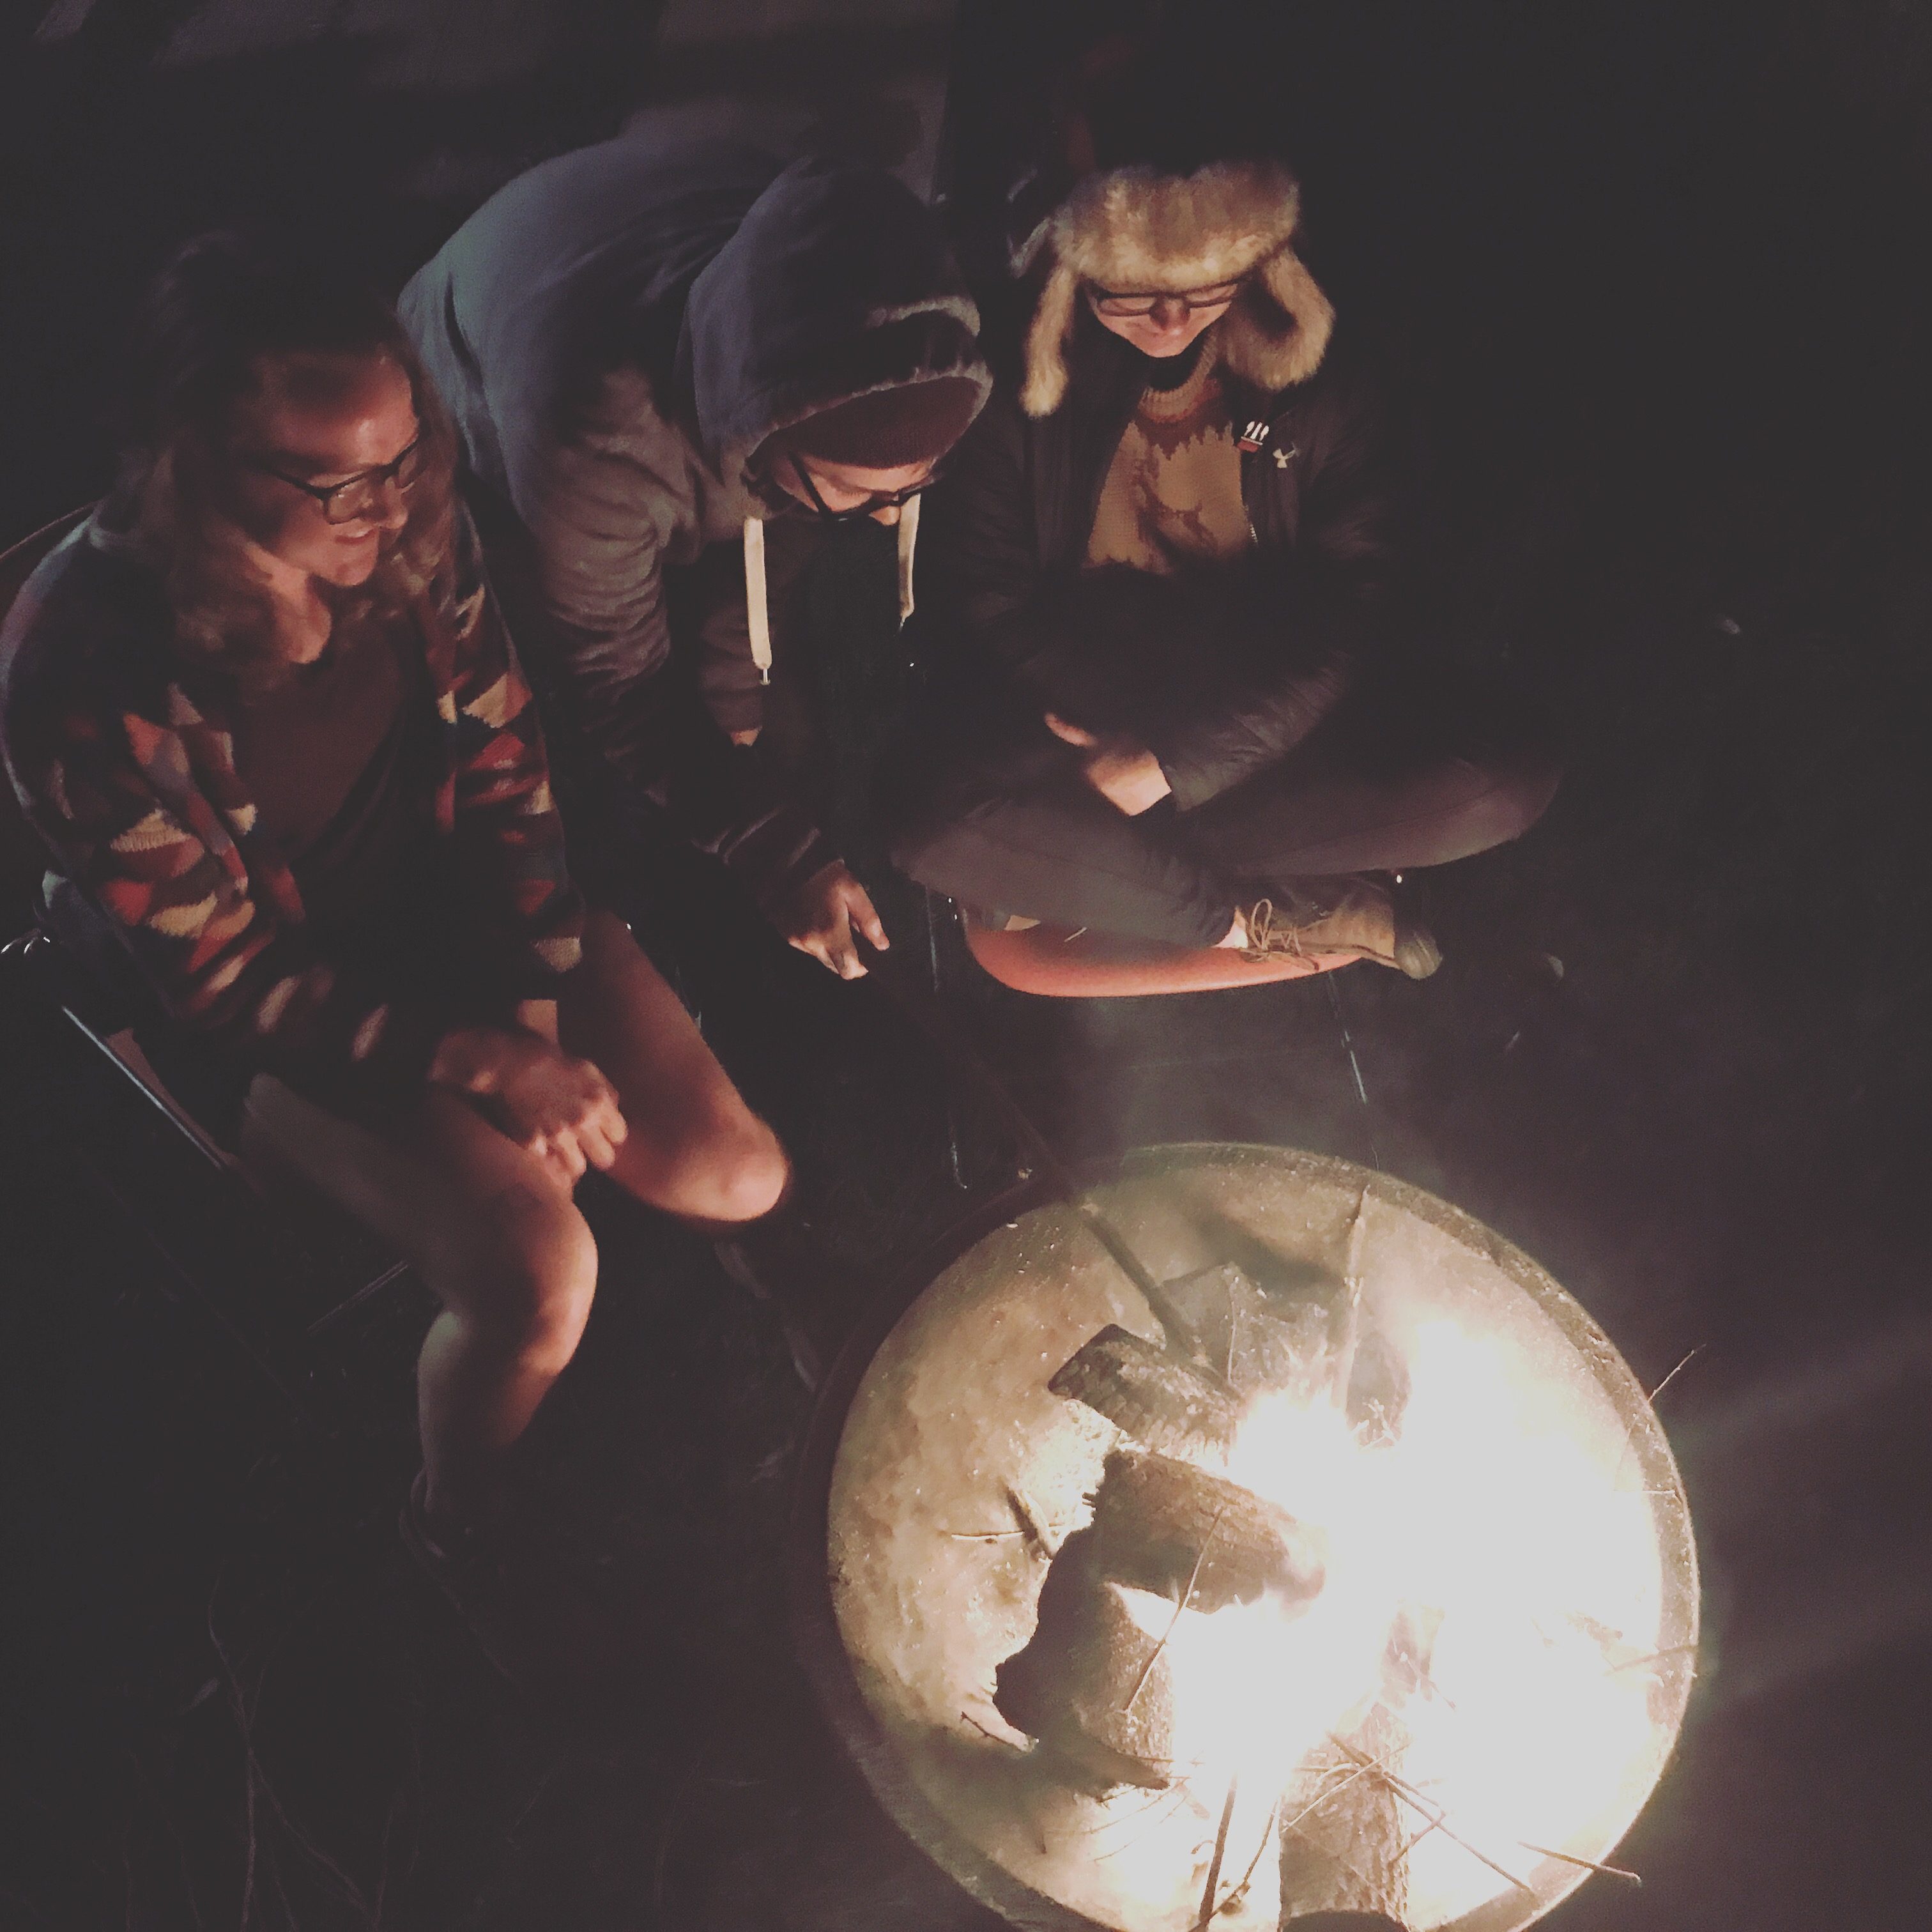 Group of friends gathered around a bonfire